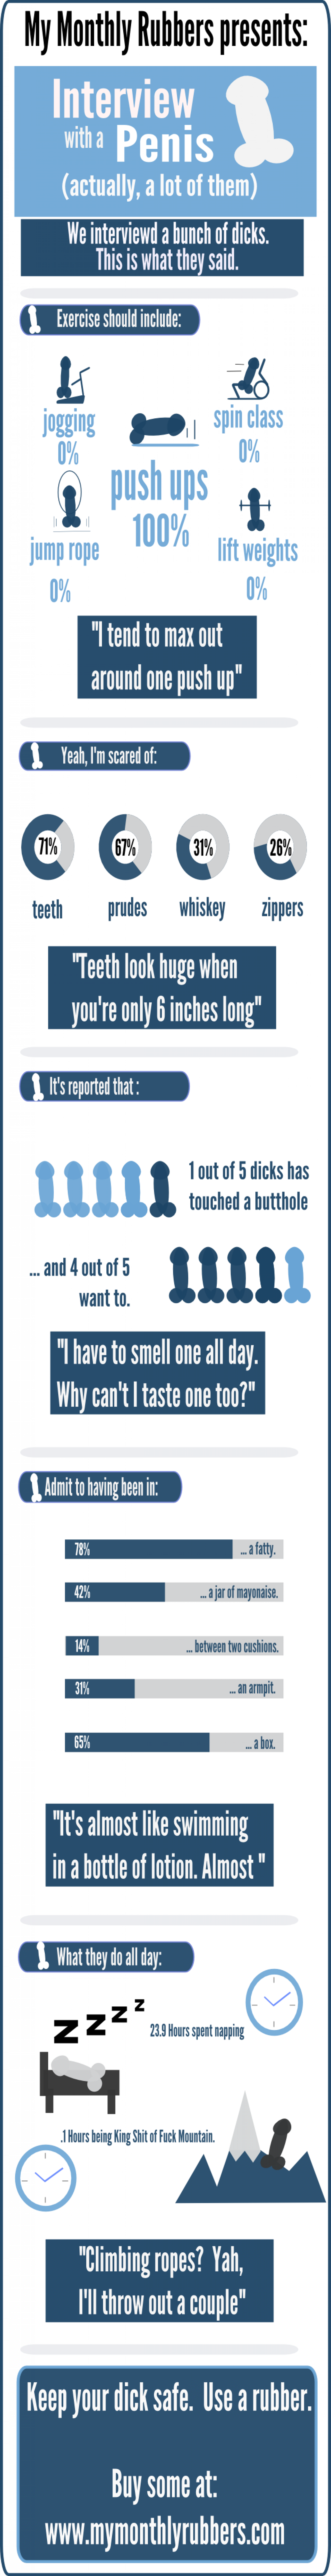 Interview with a Penis Infographic